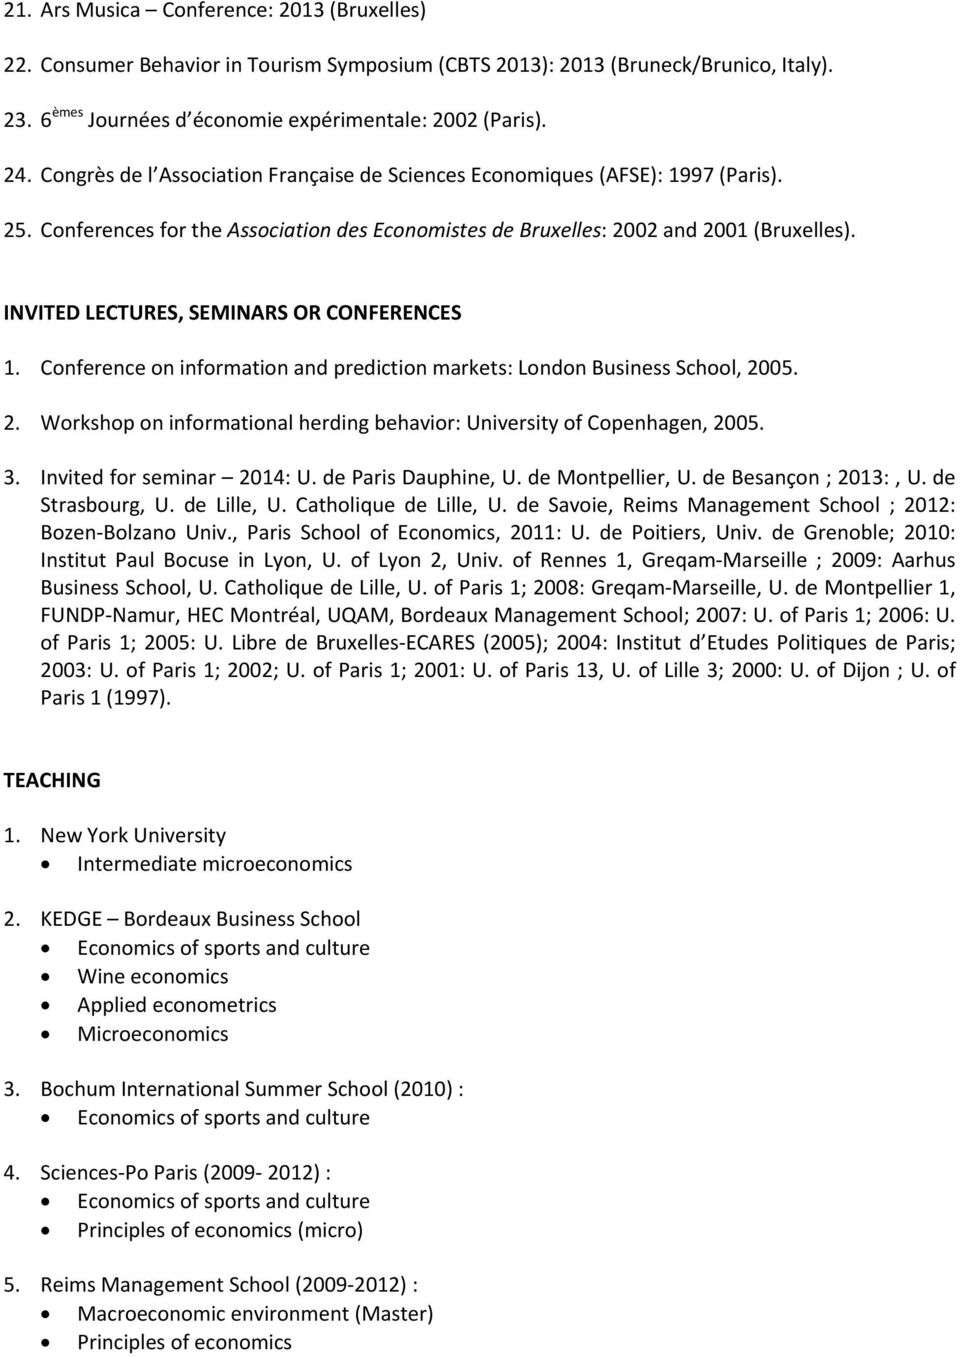 INVITED LECTURES, SEMINARS OR CONFERENCES 1. Conference on information and prediction markets: London Business School, 2005. 2. Workshop on informational herding behavior: University of Copenhagen, 2005.